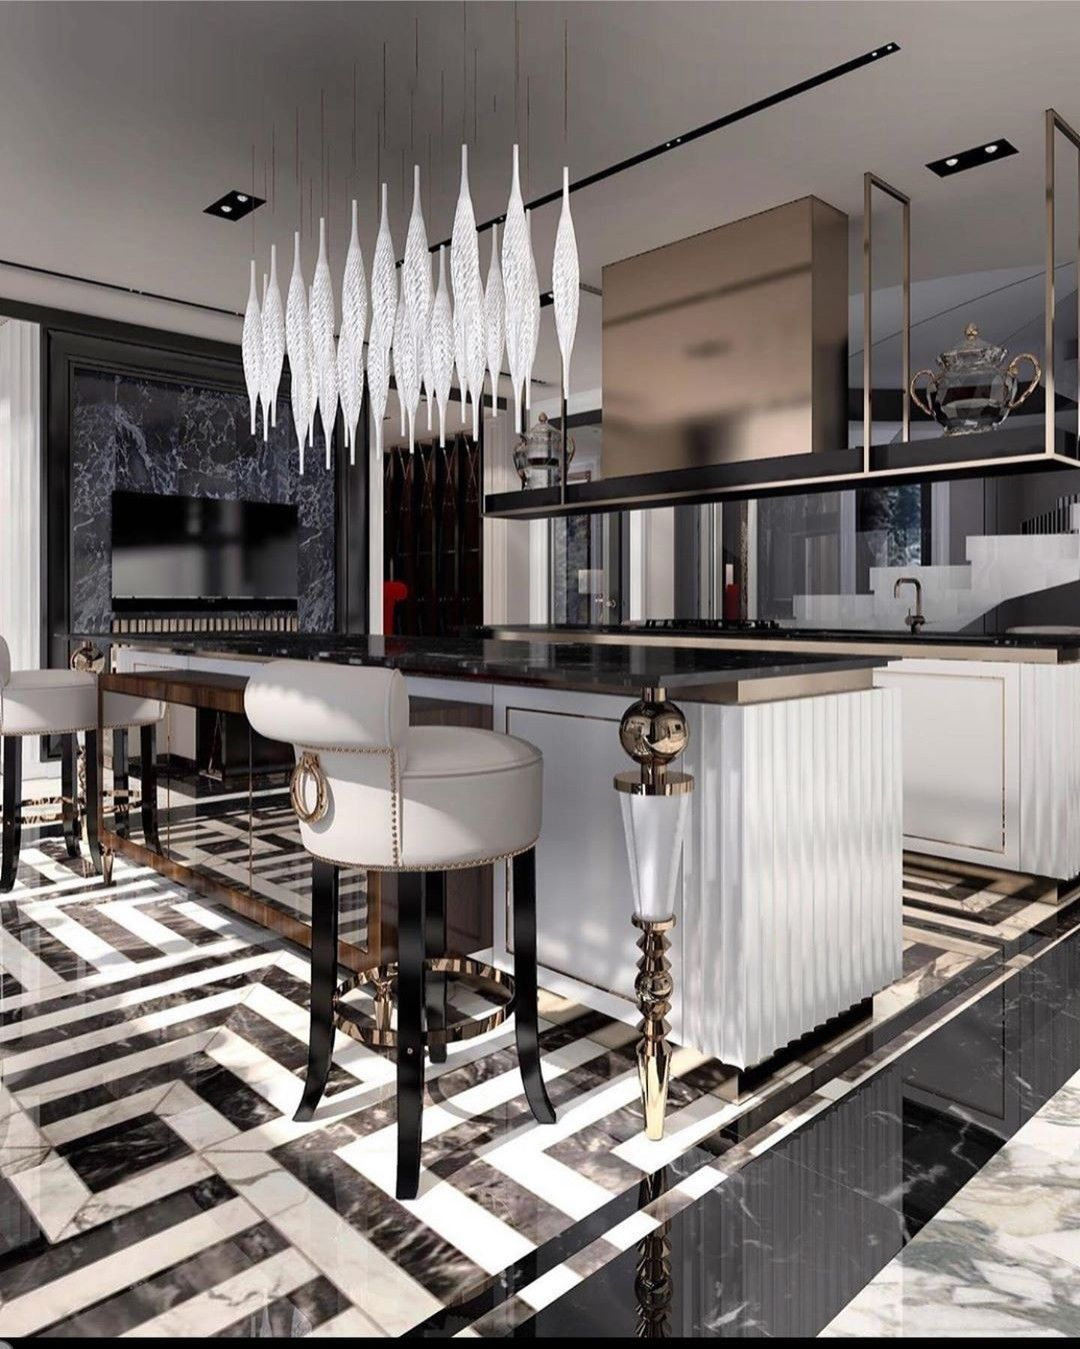 Pin By Phoebe Jules On Interior Design Ideas In 2020